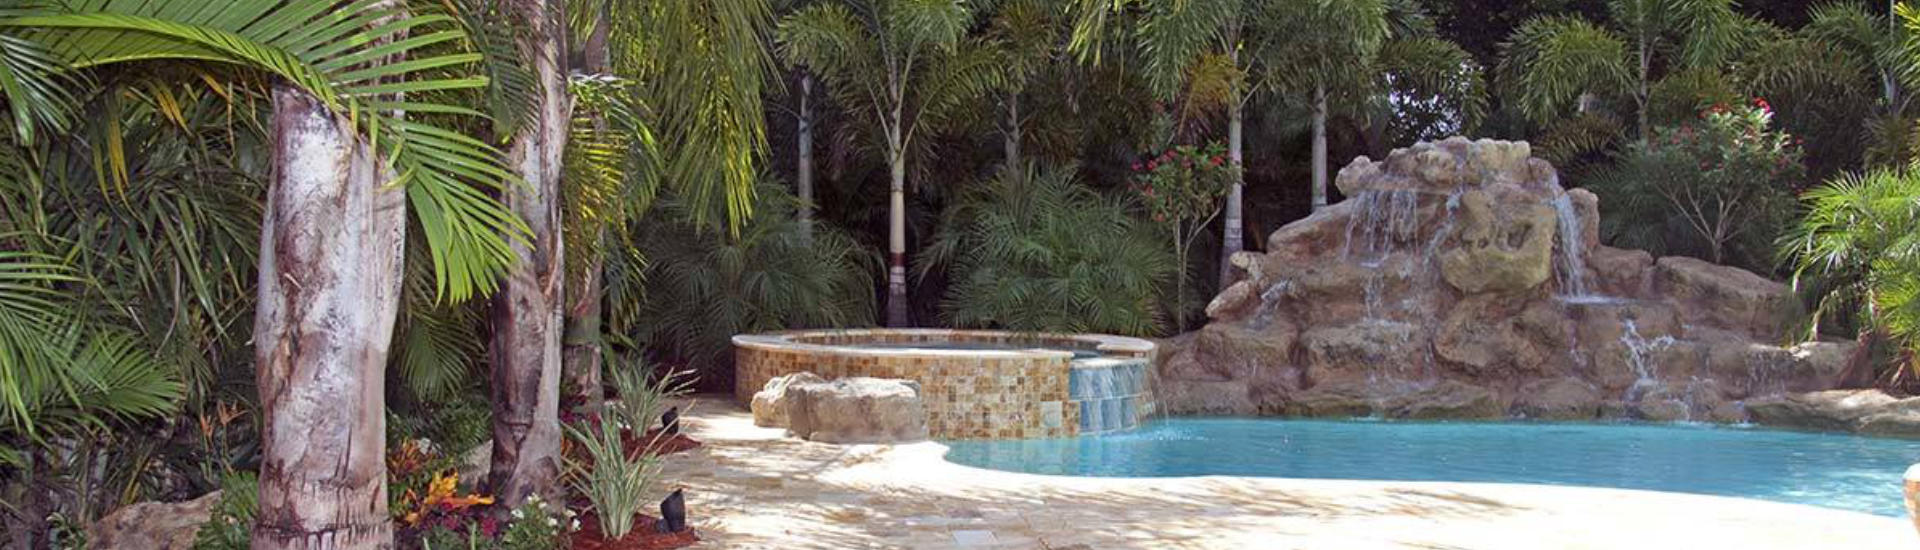 backyard swimming pool with jacuzzi and hardscape waterfall on the edge